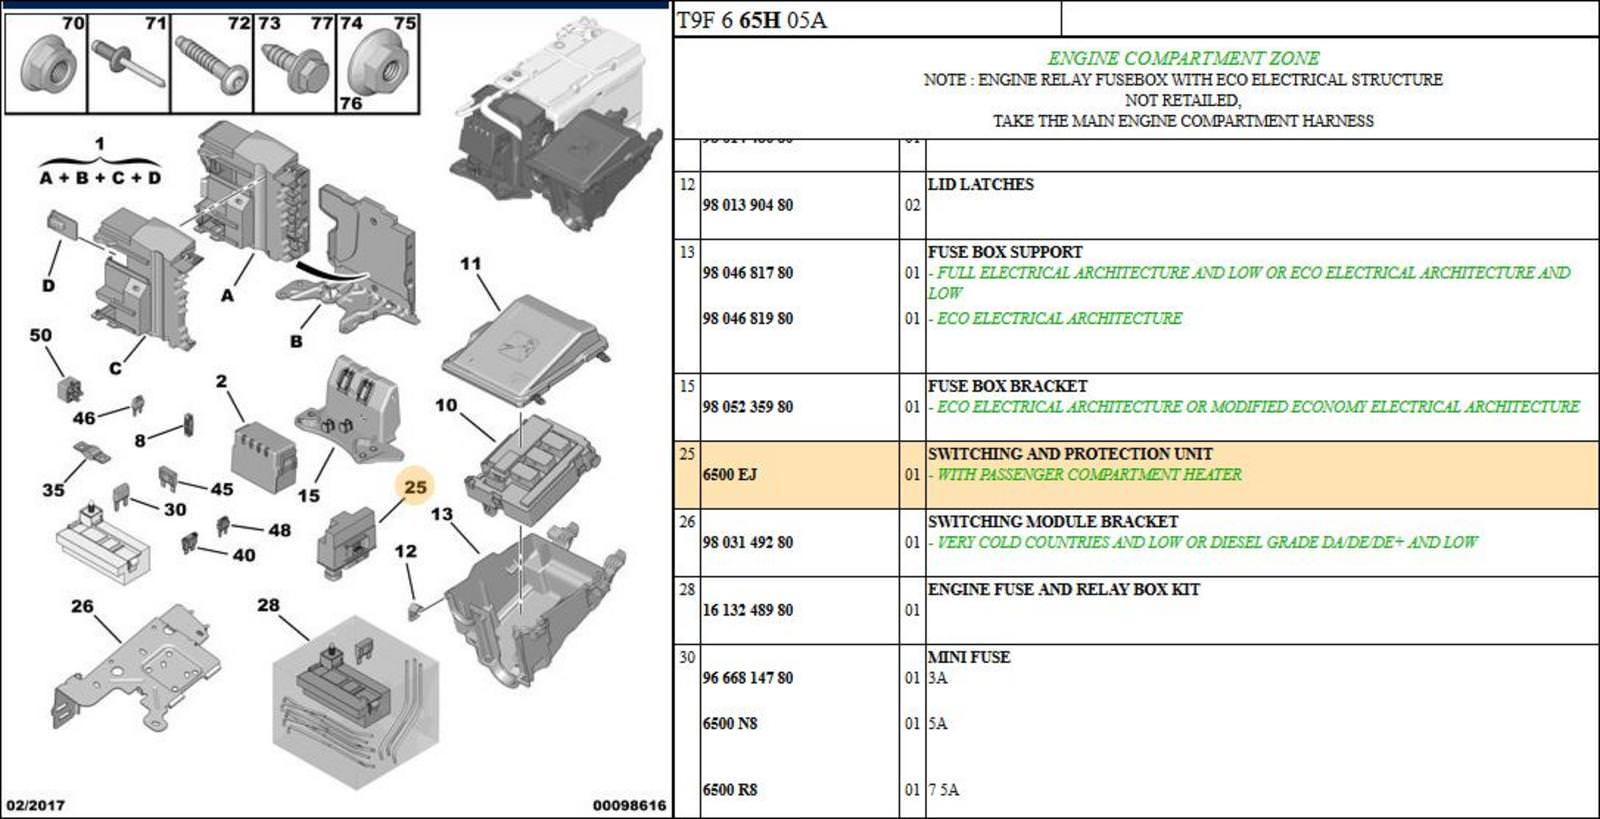 peugeot 308 fuse box cover | 162 wiring diagram presence - 162.55.53.203  wiring diagram library